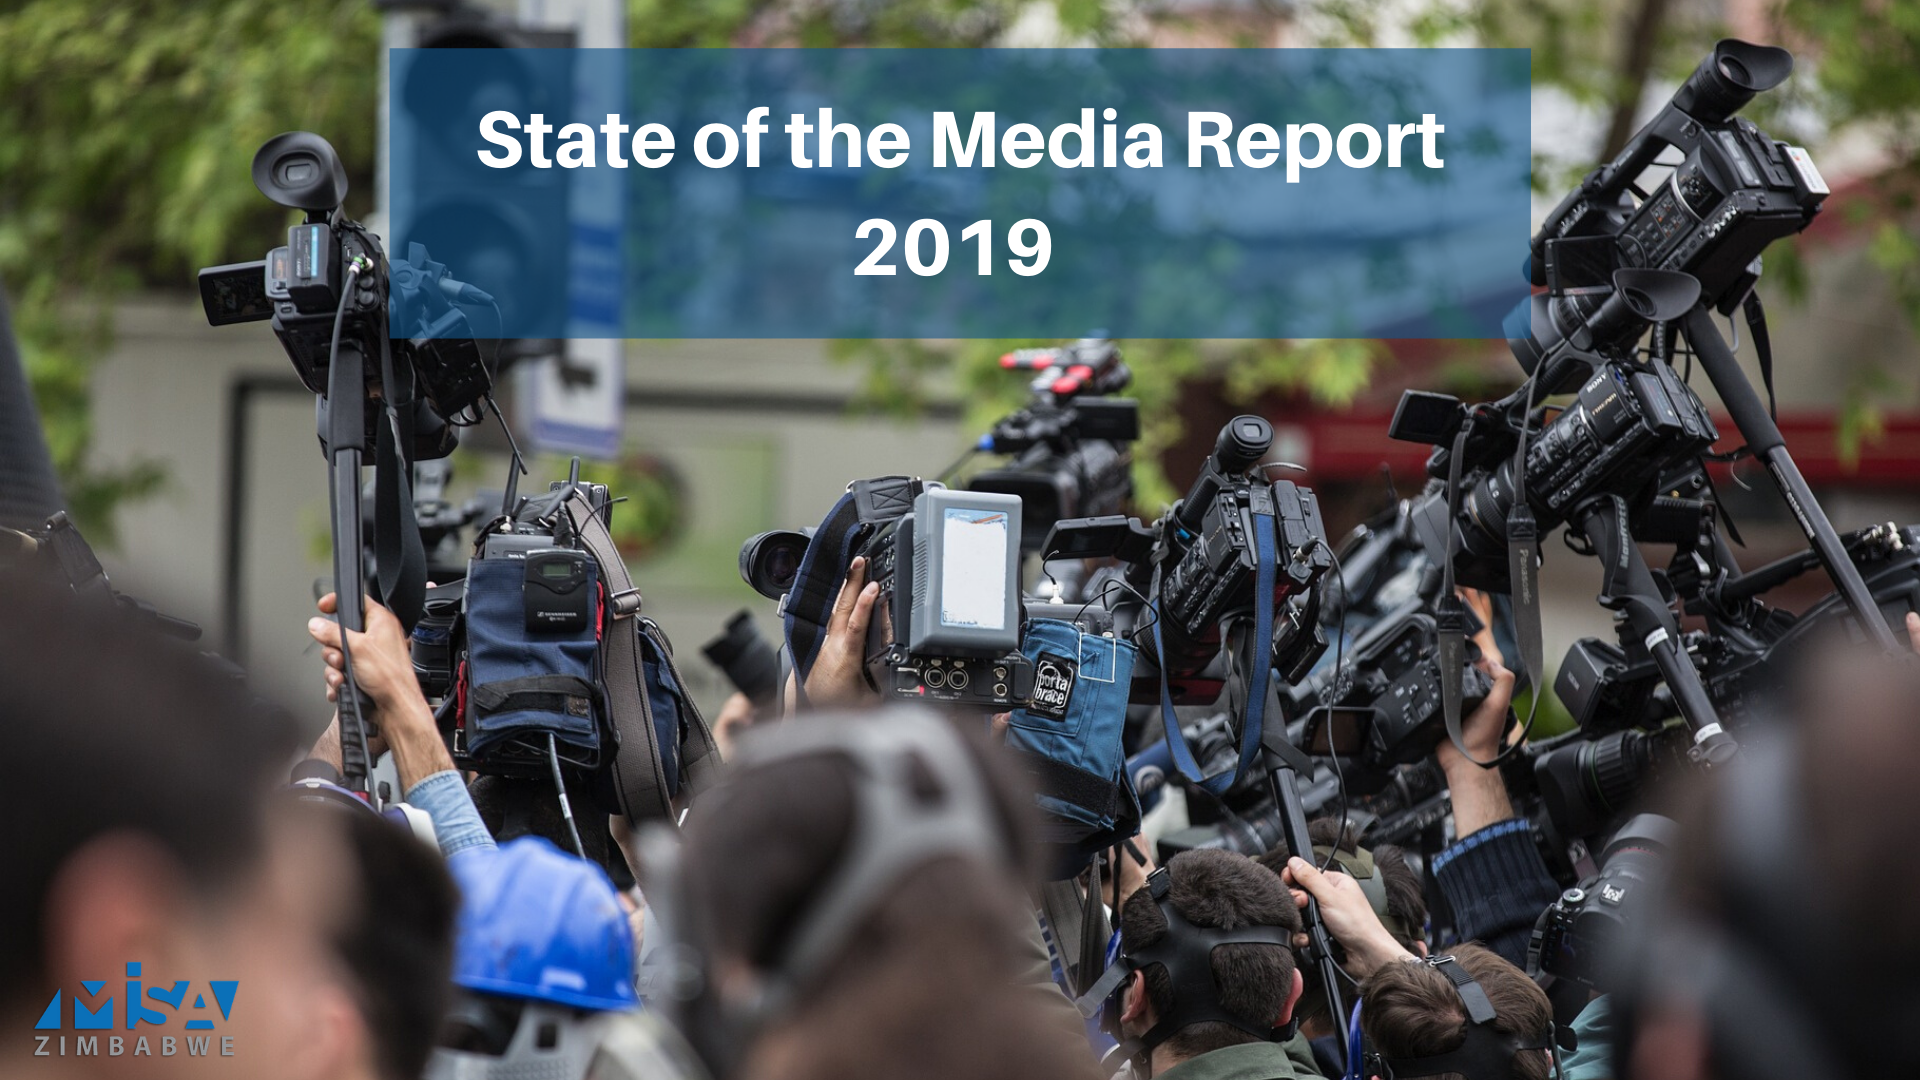 Zimbabwe: State of the media report 2019 available now!